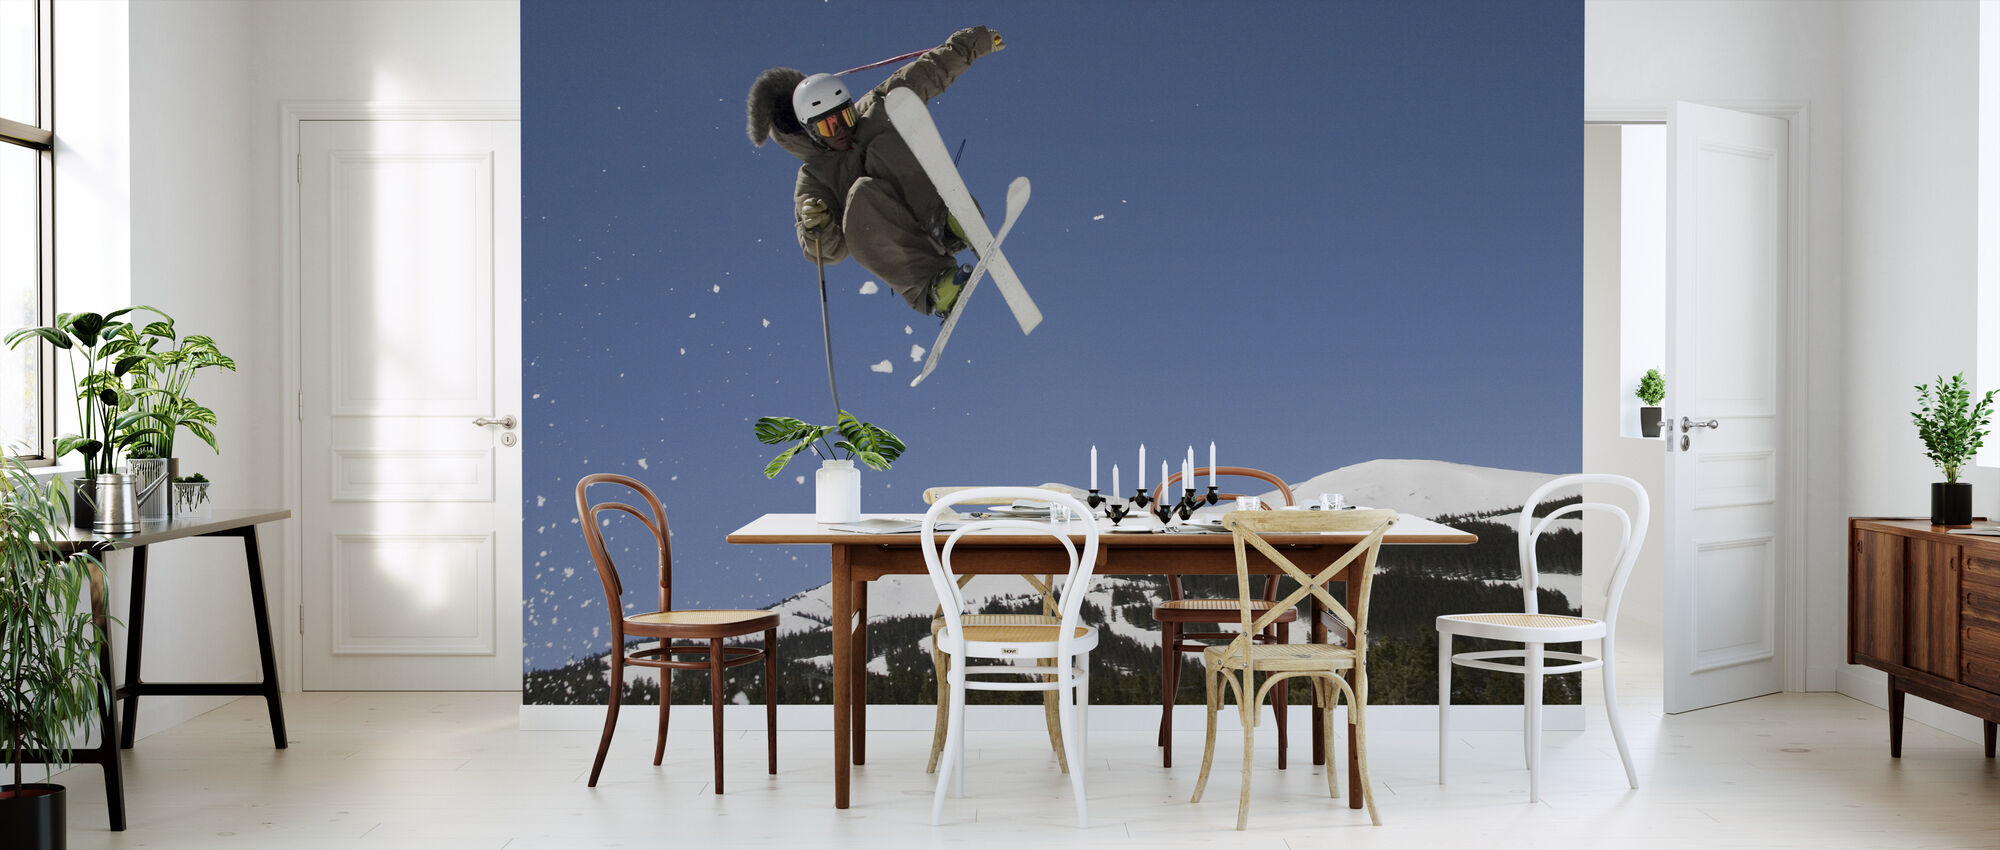 Superpipe Skier - Wallpaper - Kitchen